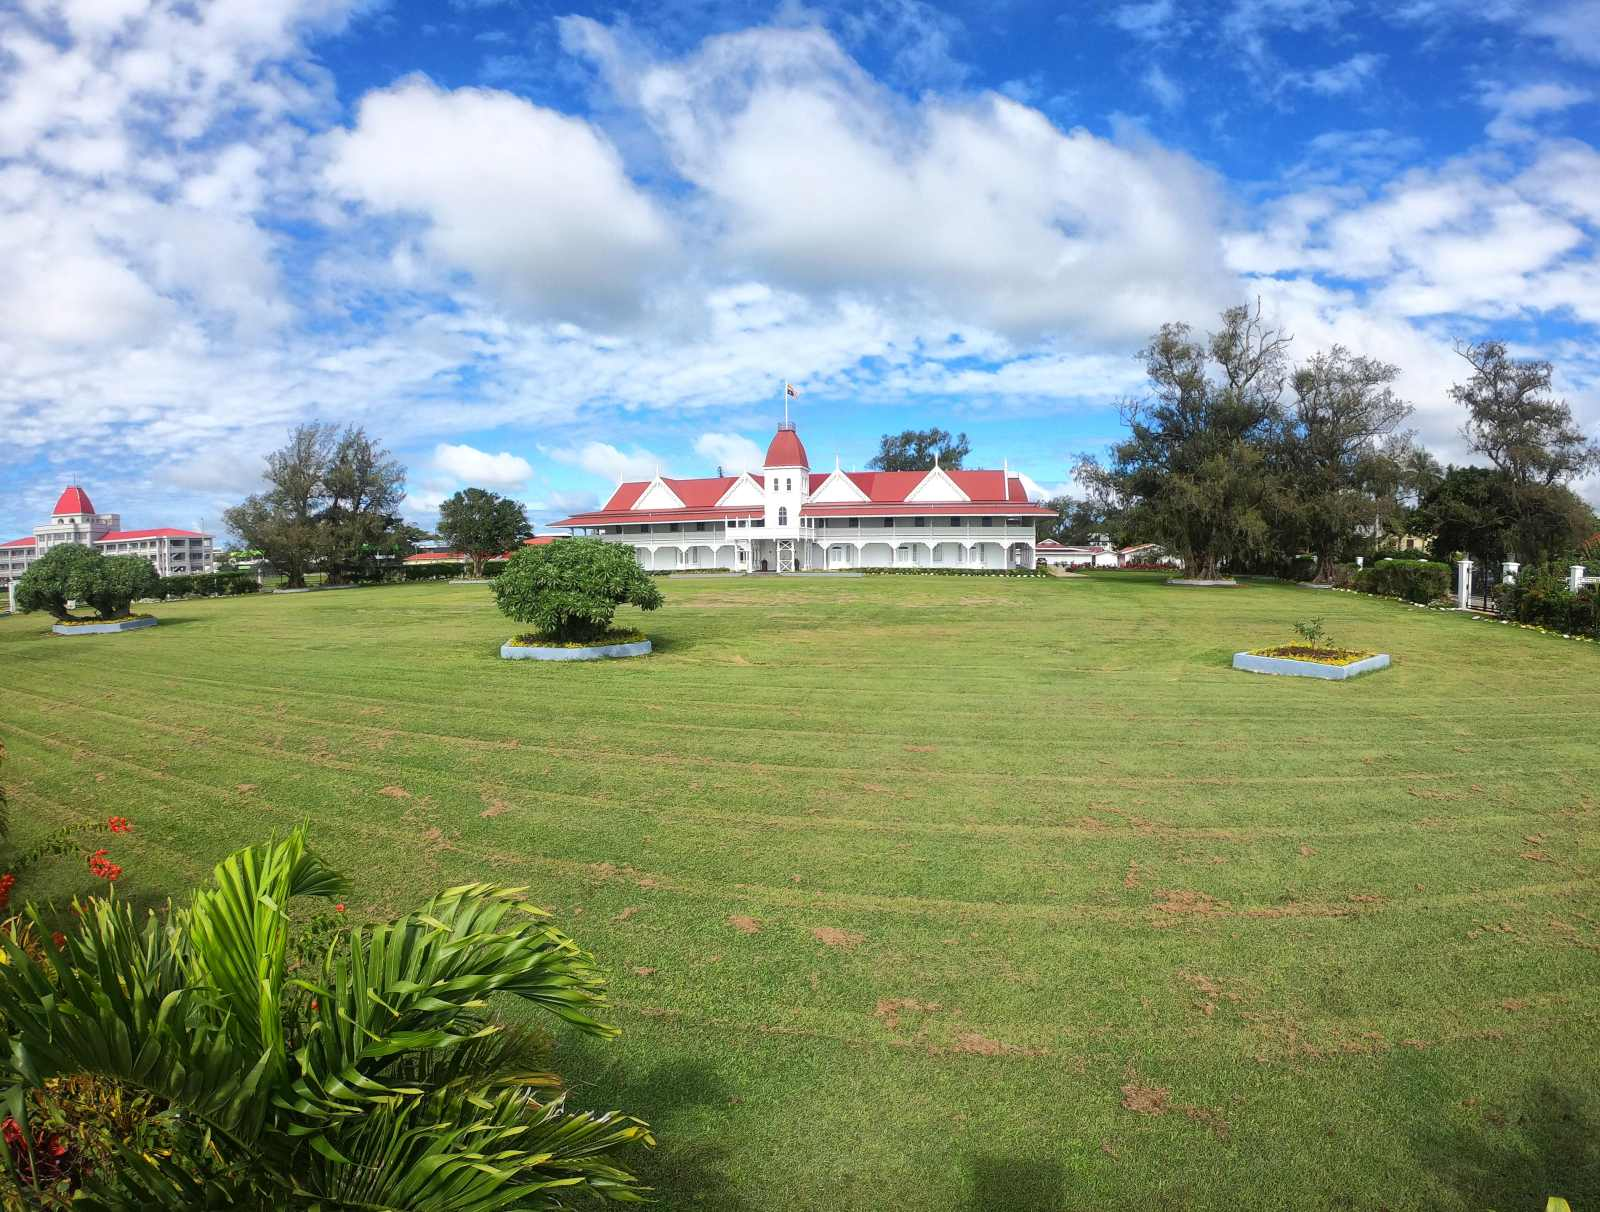 10 Most Iconic Sights in Tonga